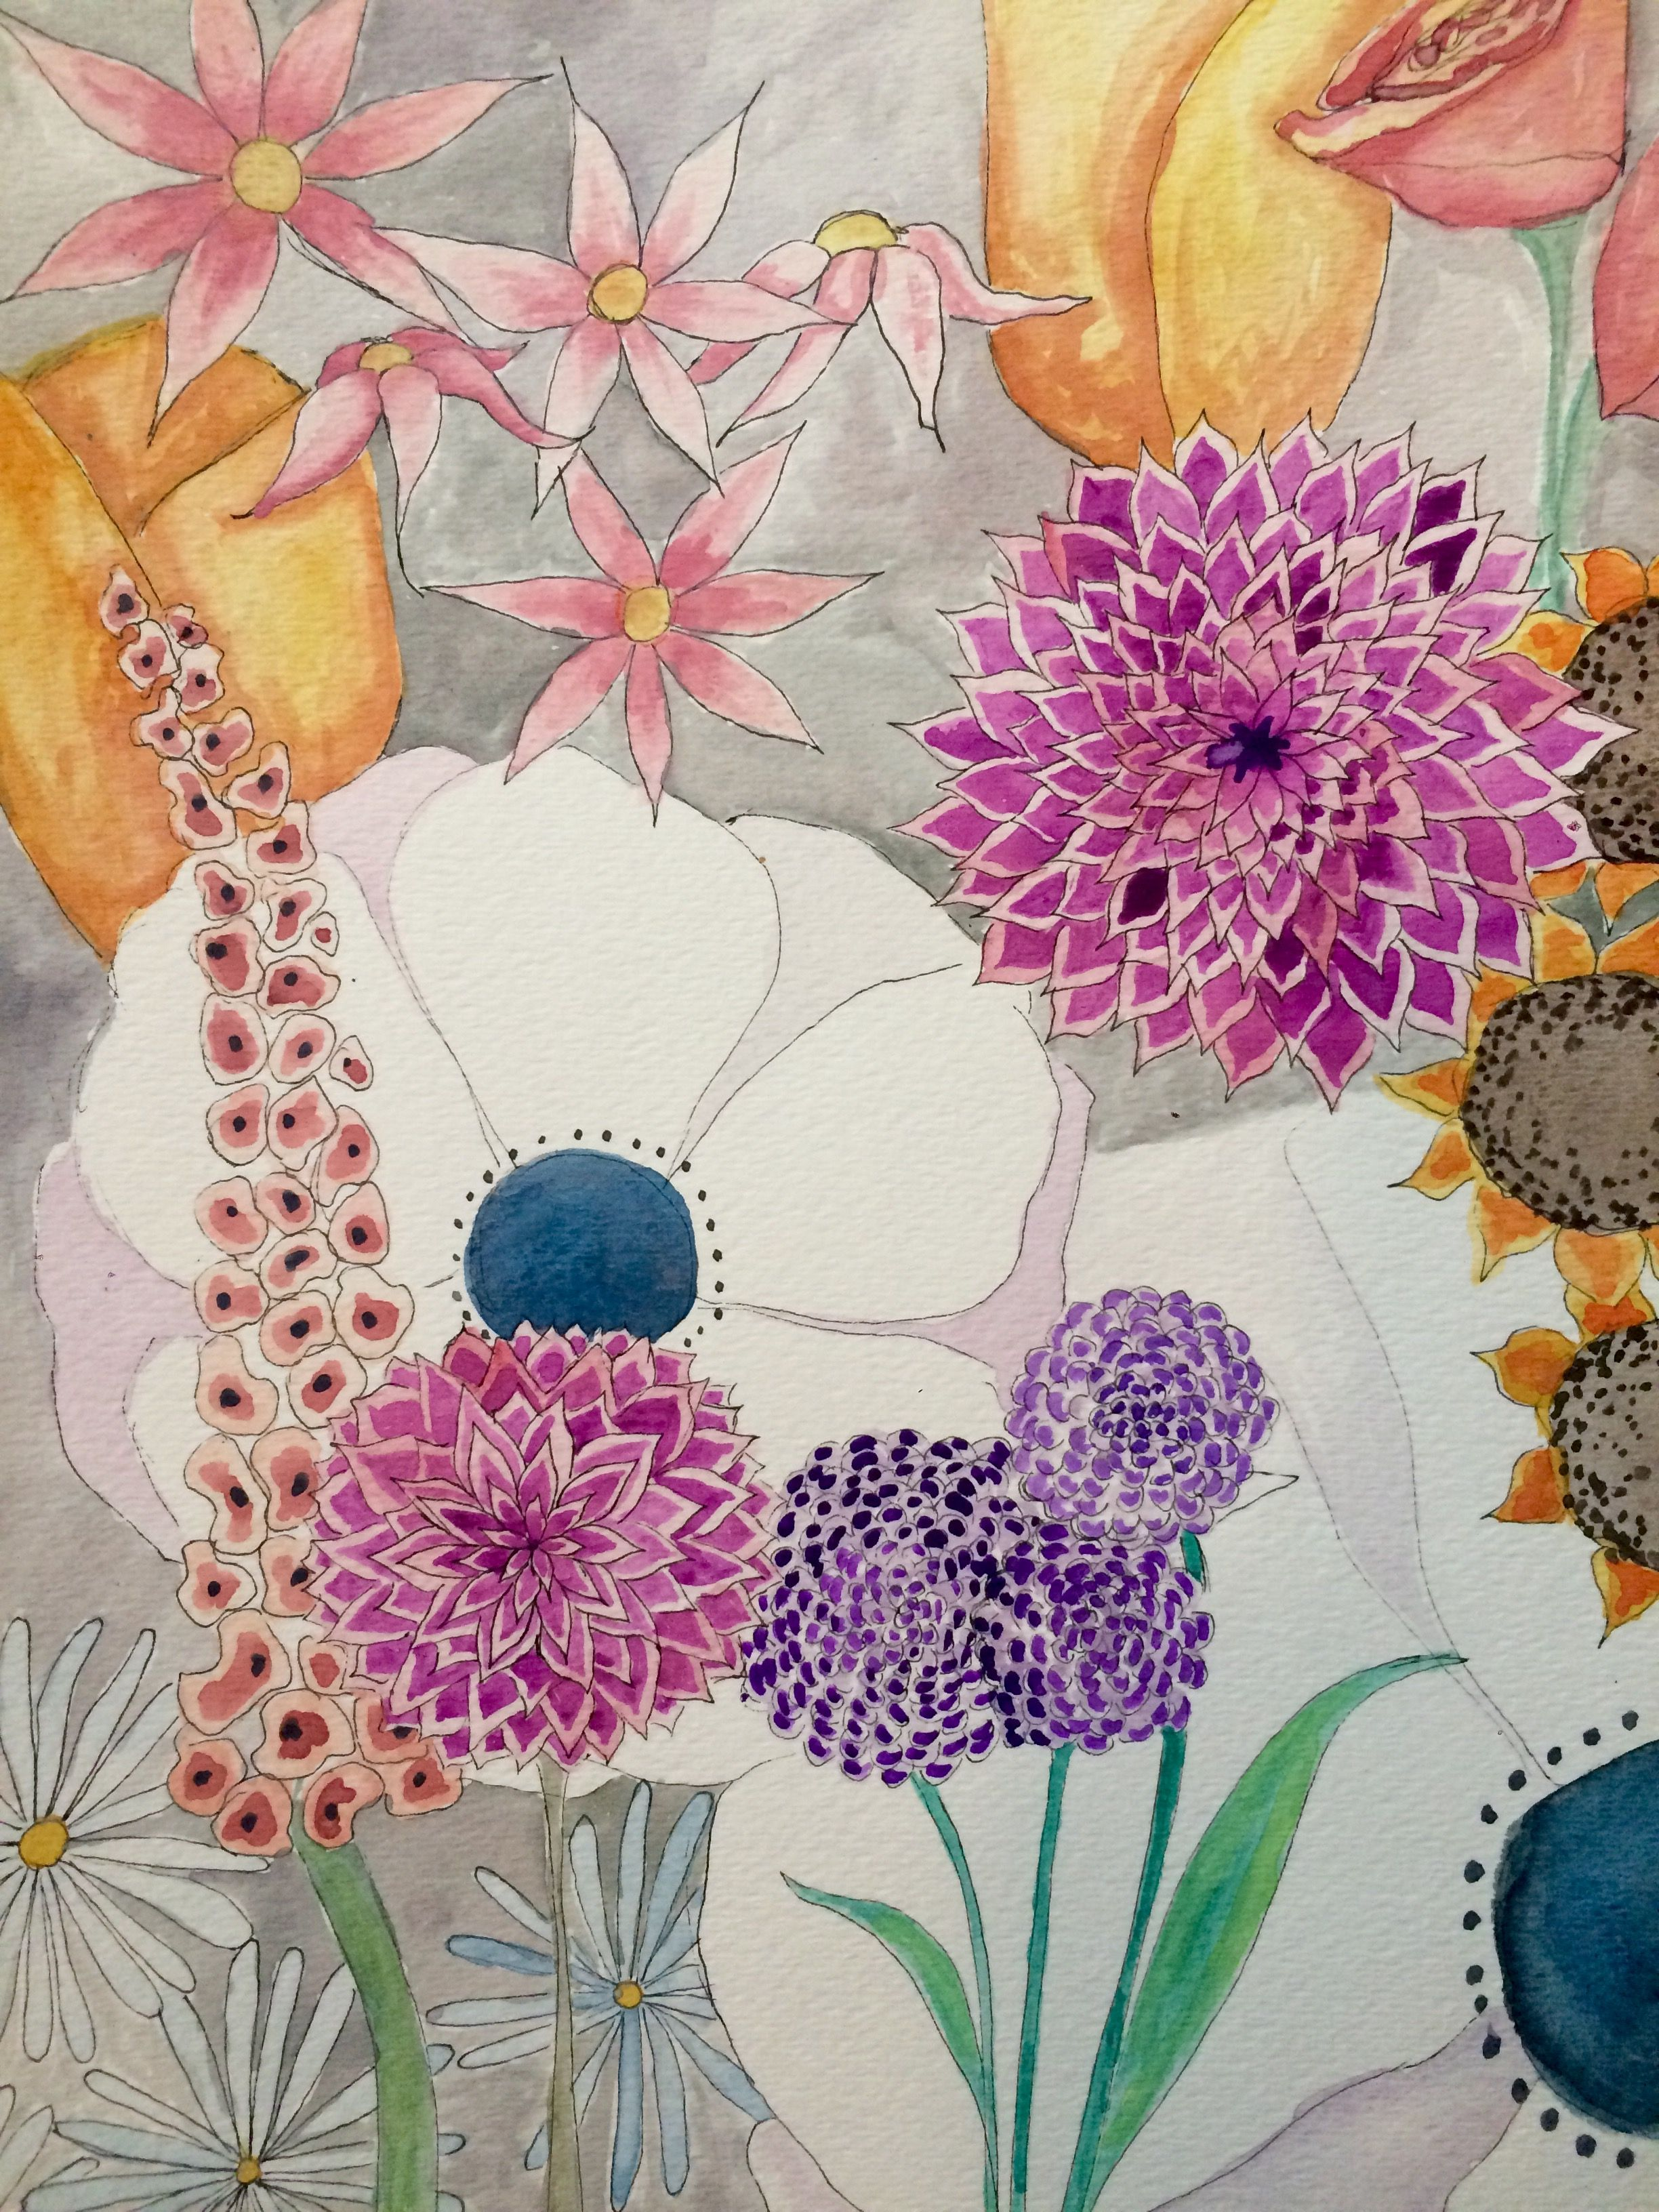 Flower Garden 3 9x12in Watercolor Painting On Watercolor Paper